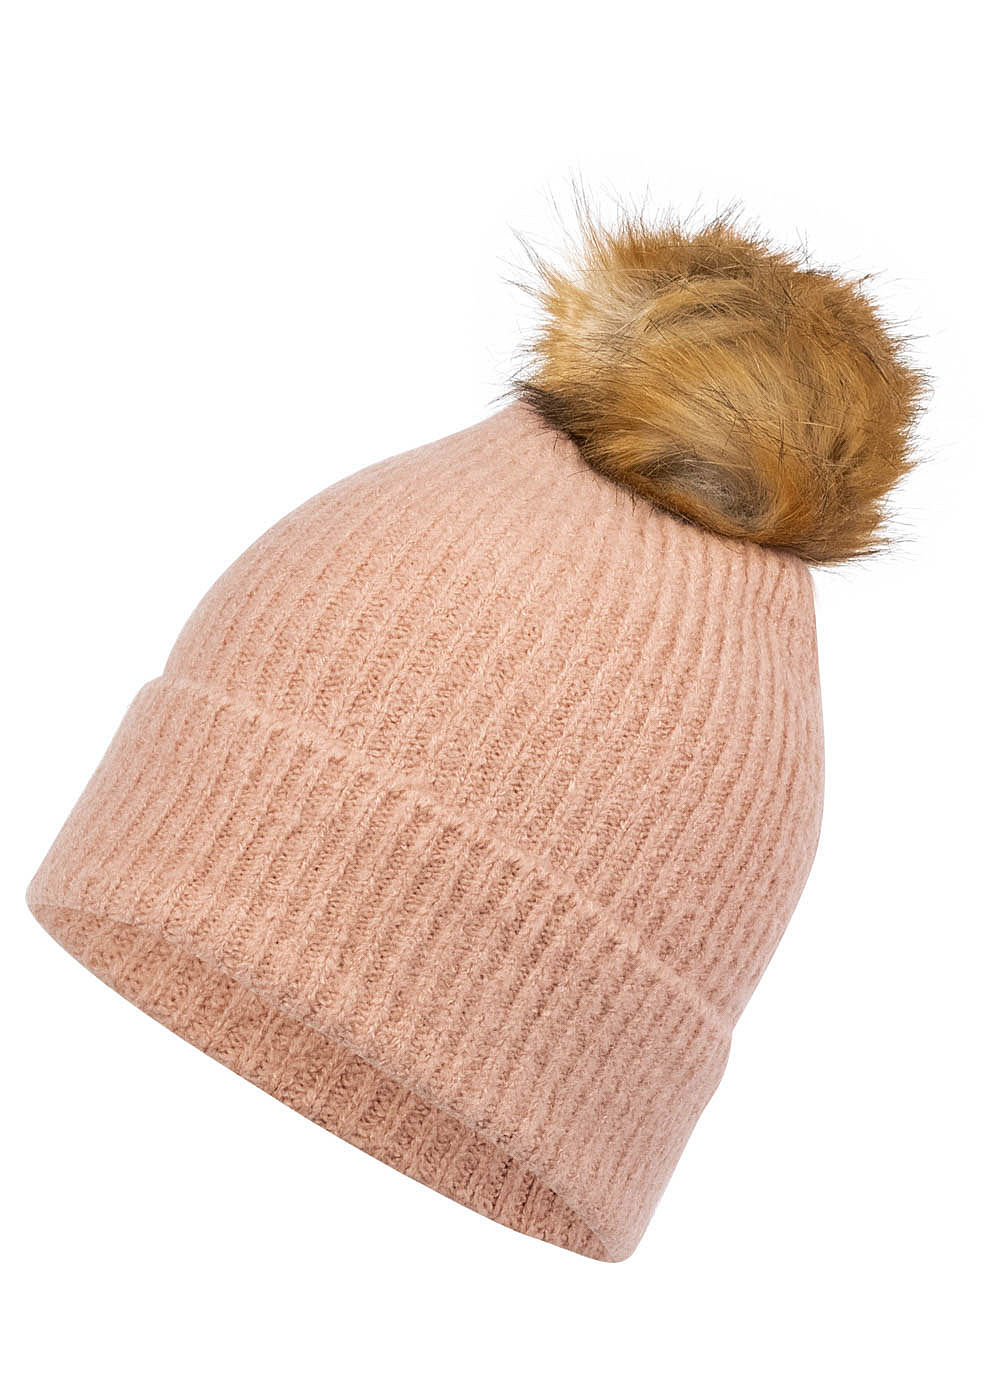 ONLY Damen Pom Pom Strick Beanie misty rosa - Art.-Nr.: 19093761-OS-RS